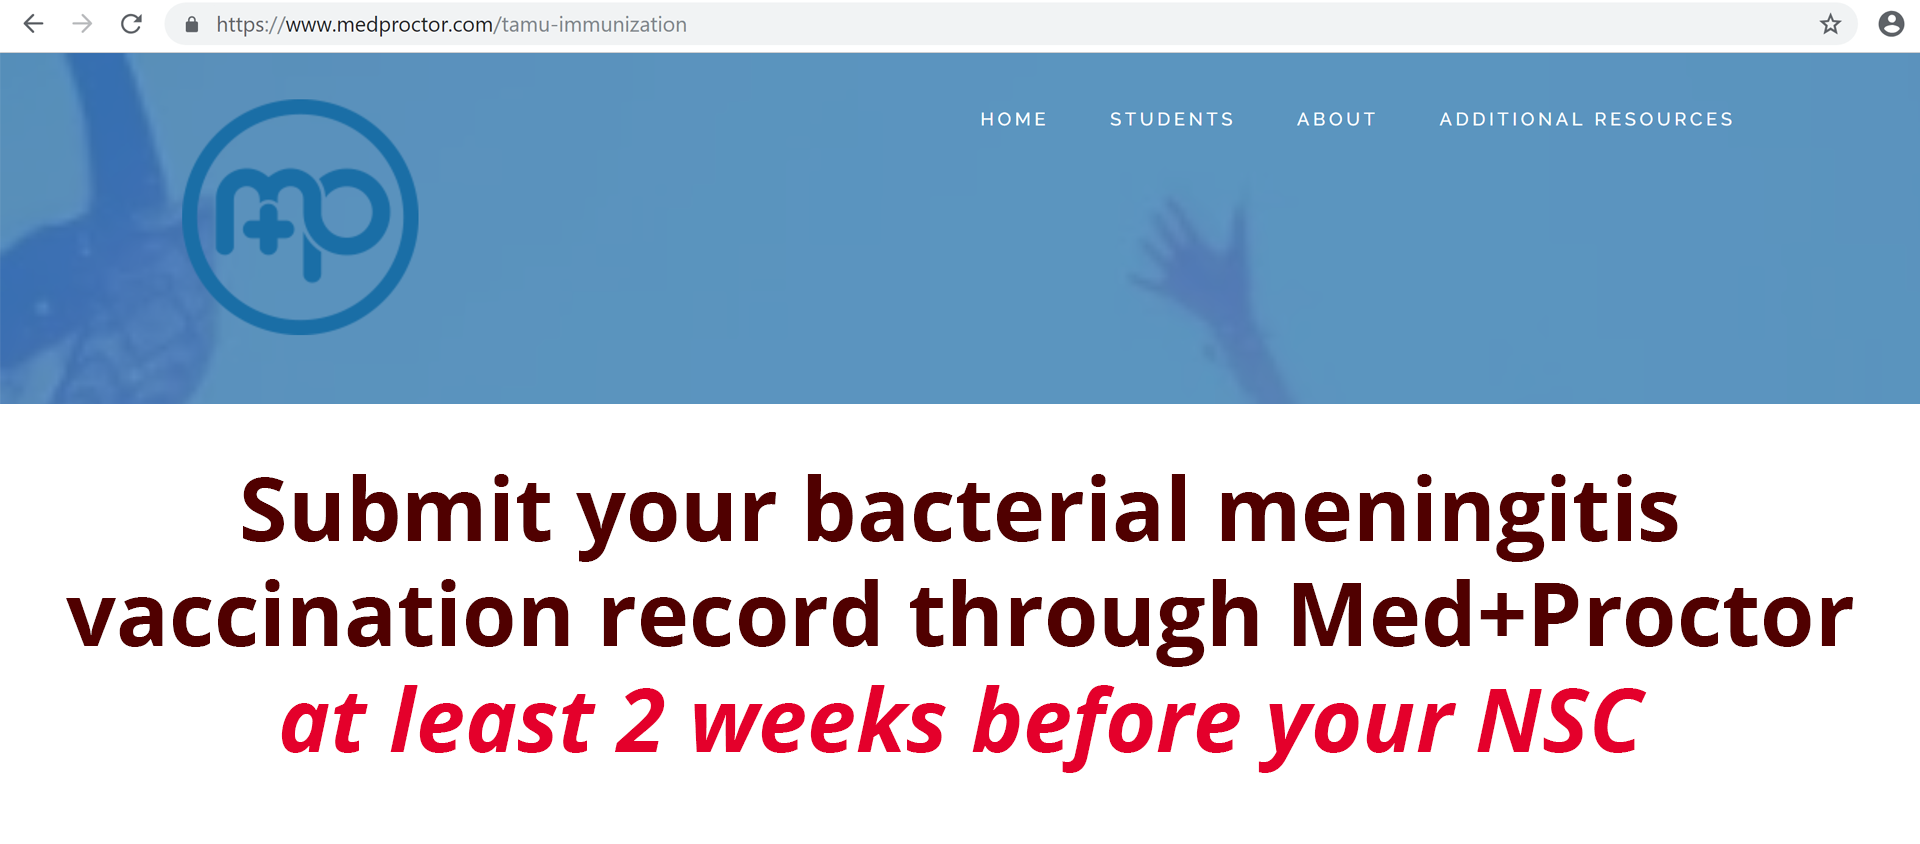 Submit your bacterial meningitis vaccination record through Med+Proctor at least 2 weeks before your NSC